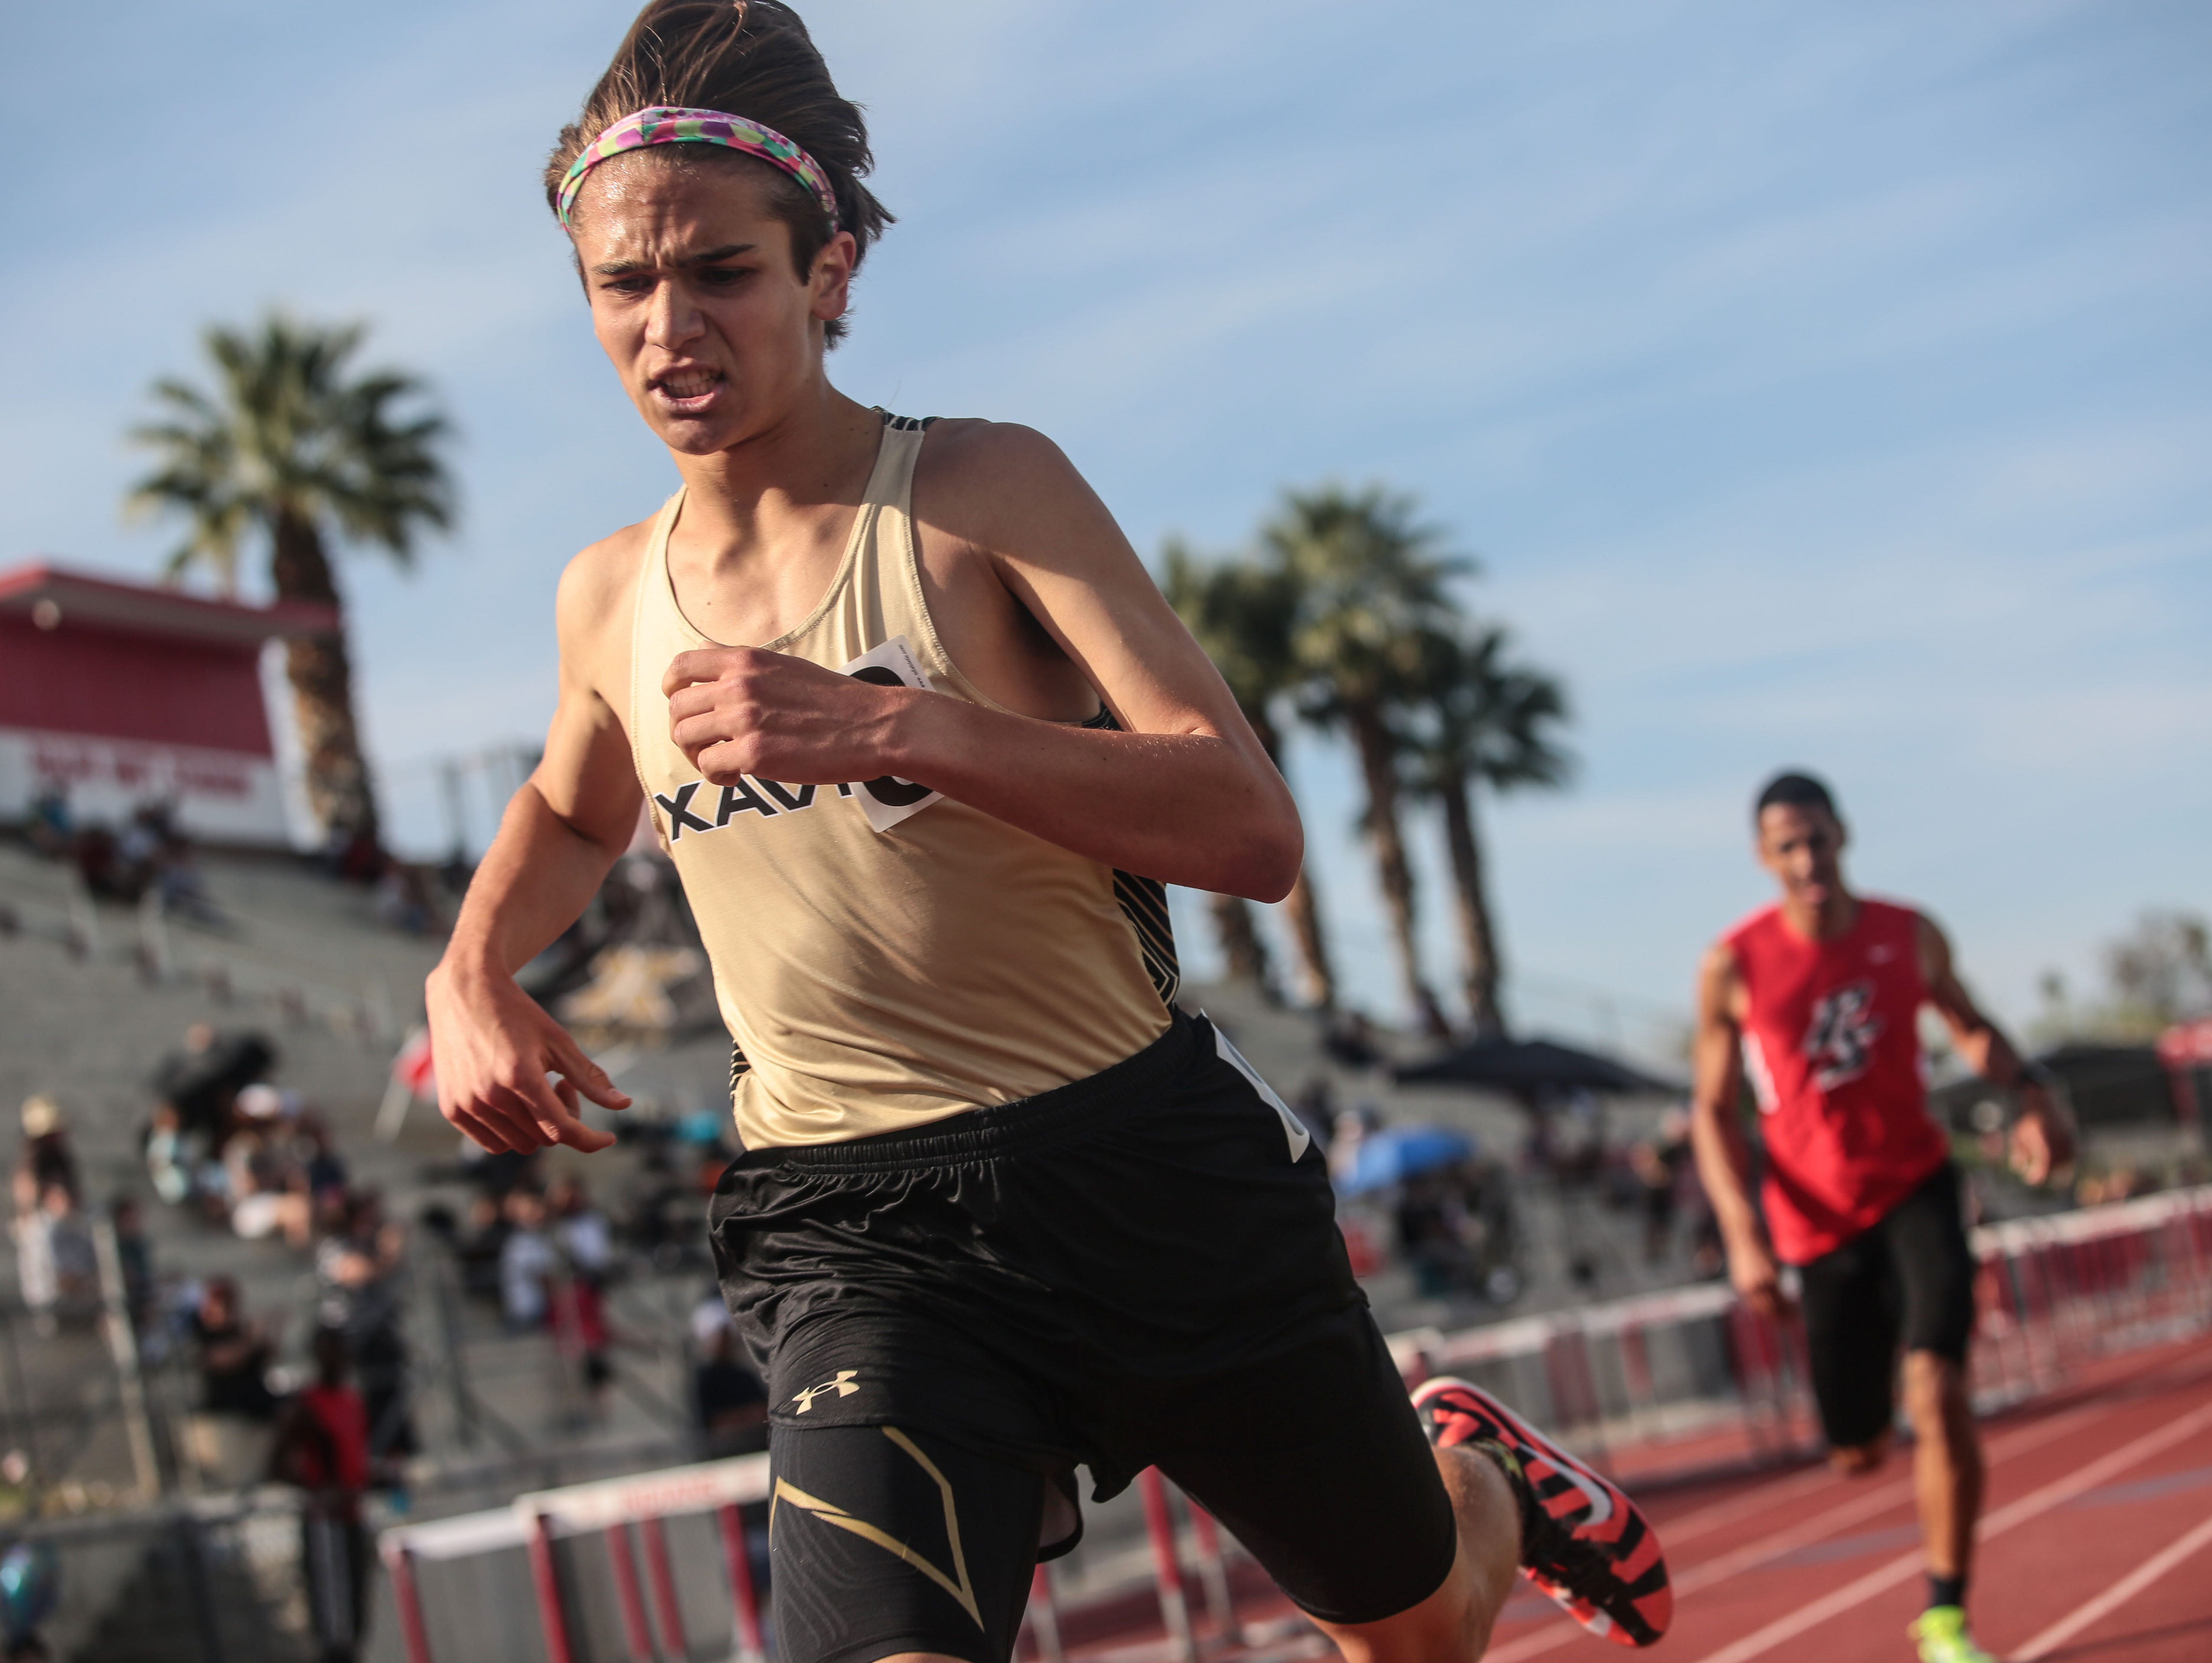 Xavier's Michael Brannier crosses the line first in the boys varsity 1600m race followed by Palm Springs' Kiviok Hight on Thursday, March 16, 2017 in Palm Springs.